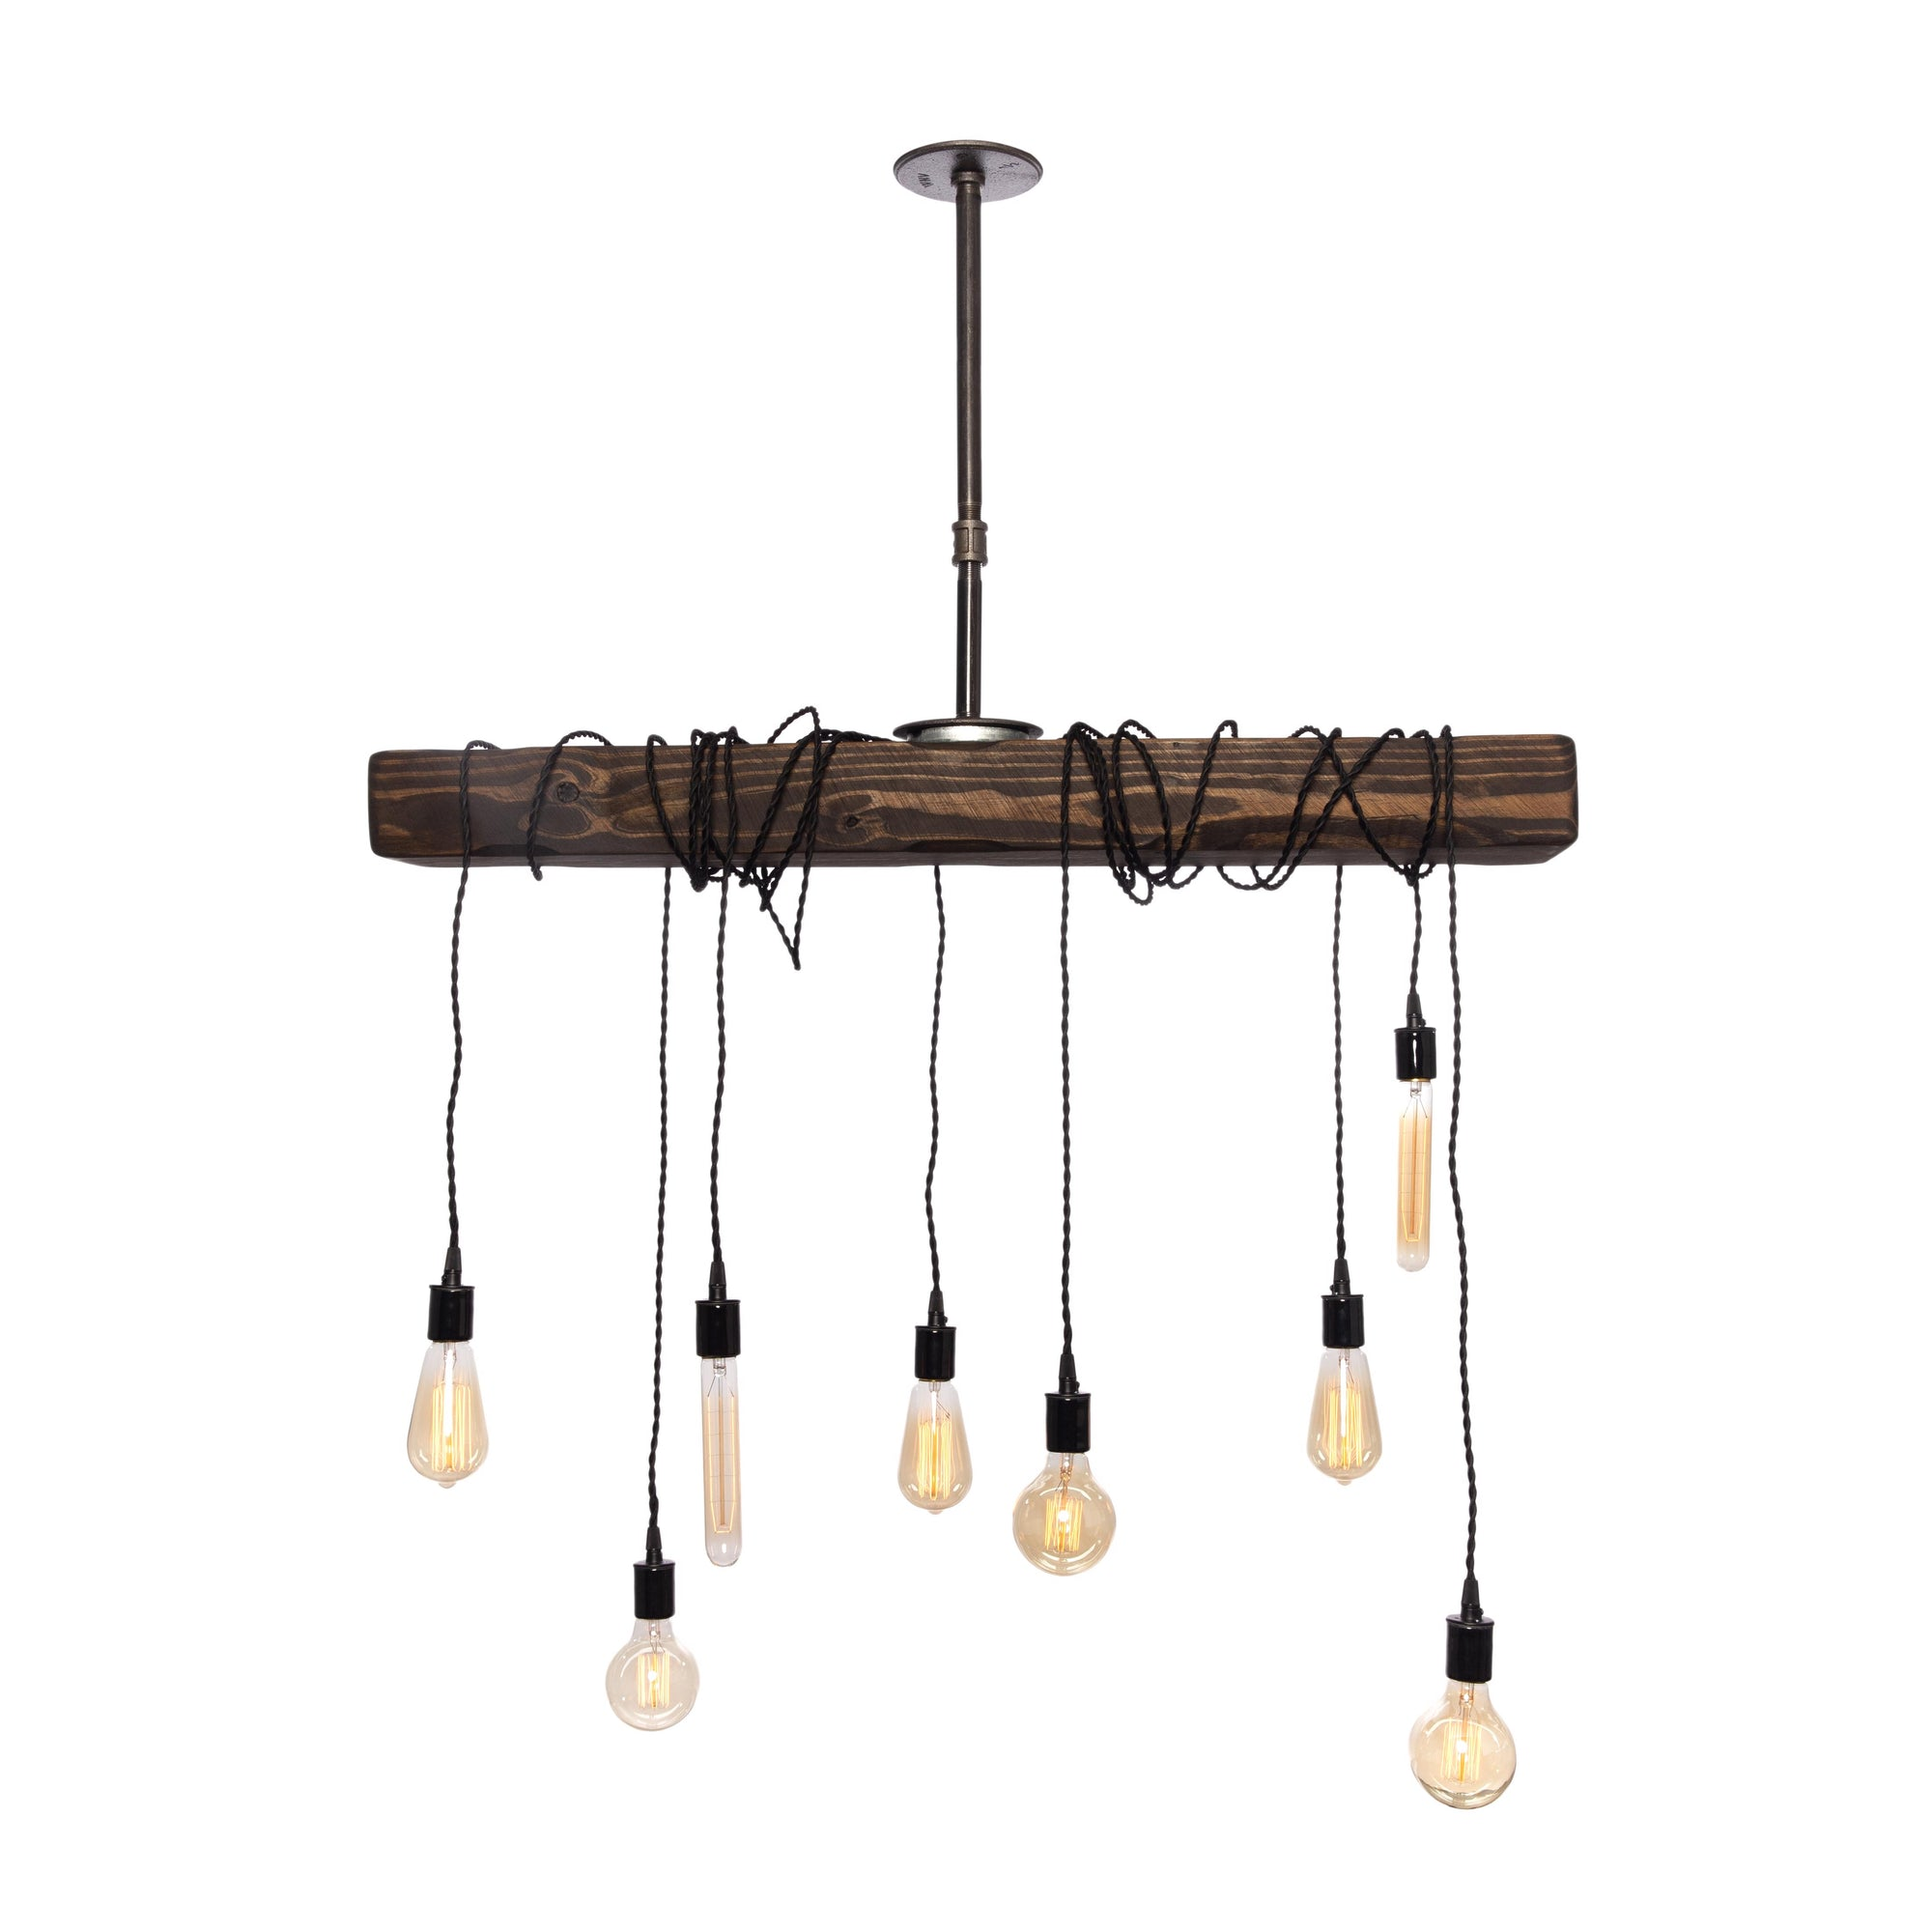 Pendant Wood Beam Chandelier